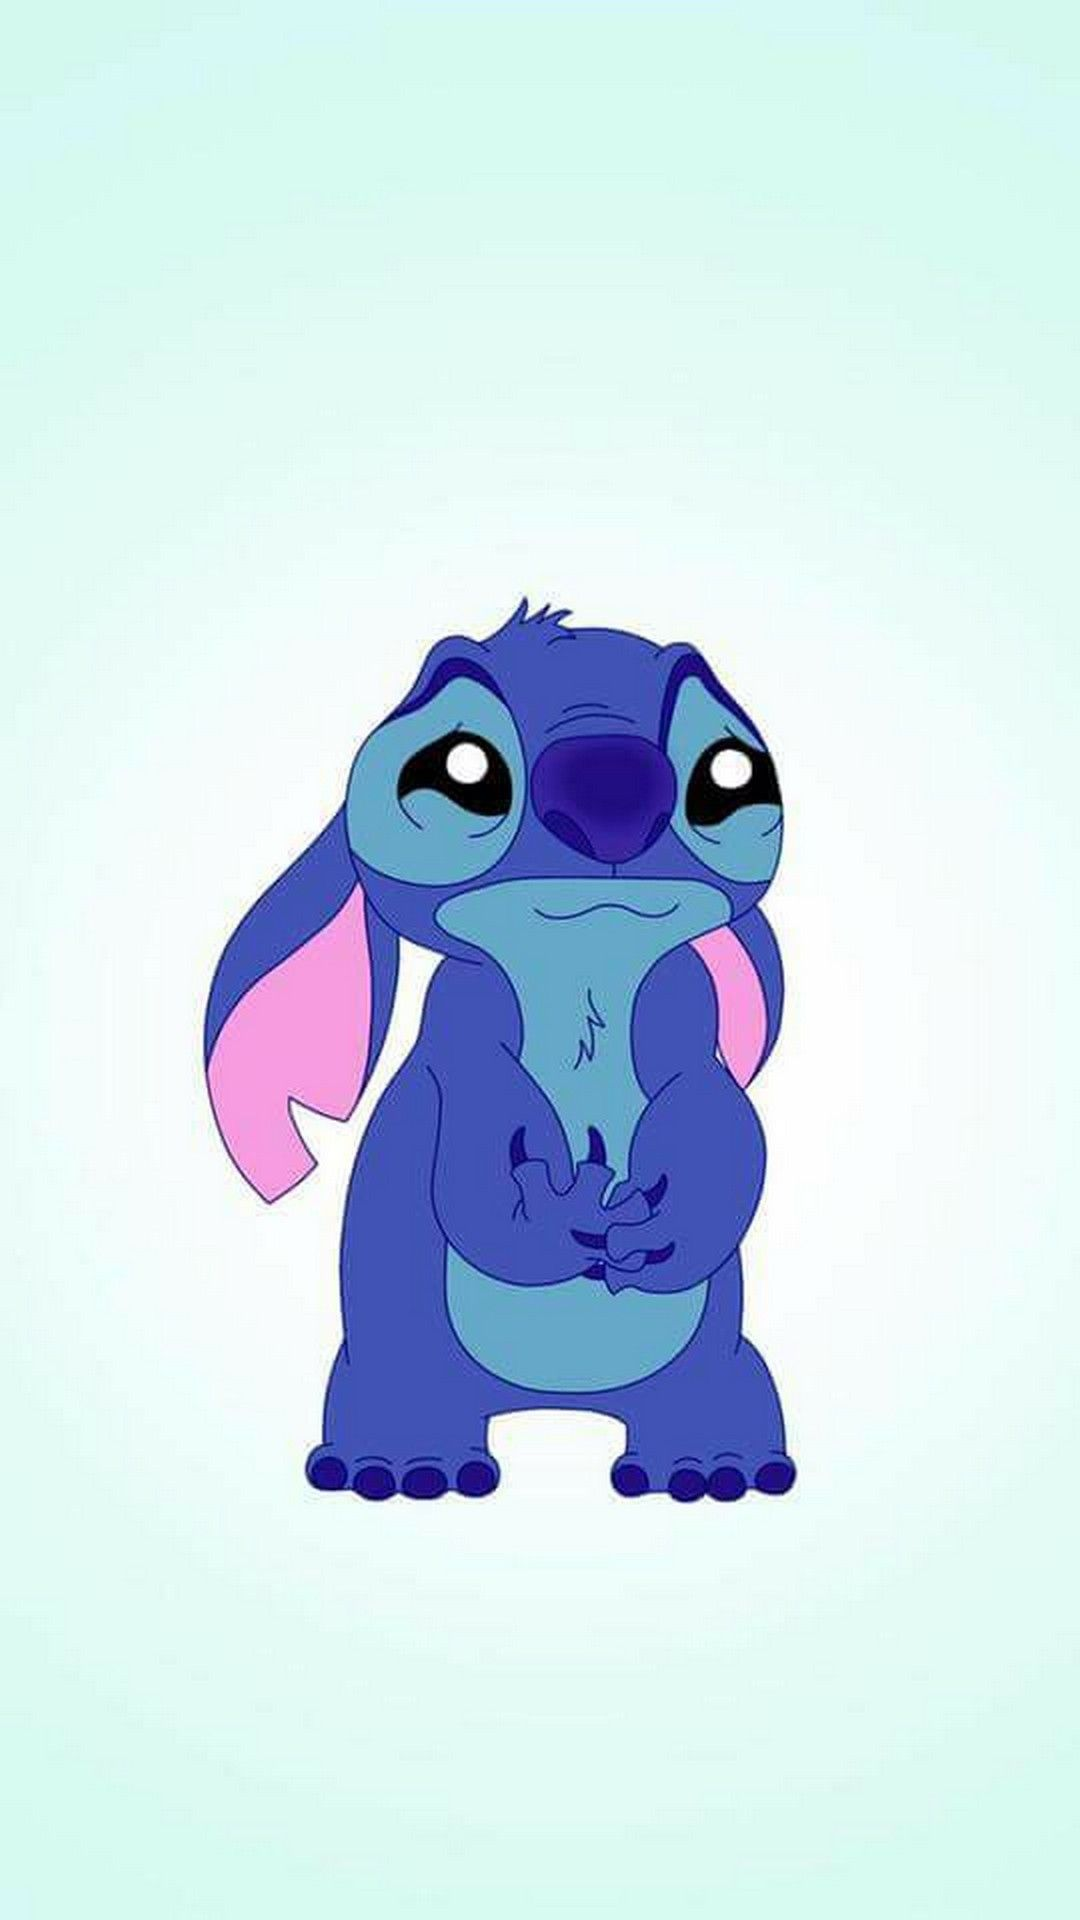 1080x1920 Stitch Wallpaper For Mobile Android 2018 Cute